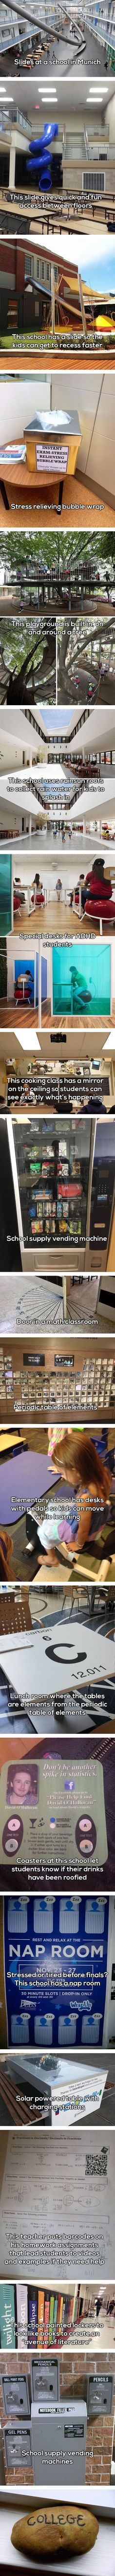 I will not skip any classes if my school got these brilliant inventions - 9GAG